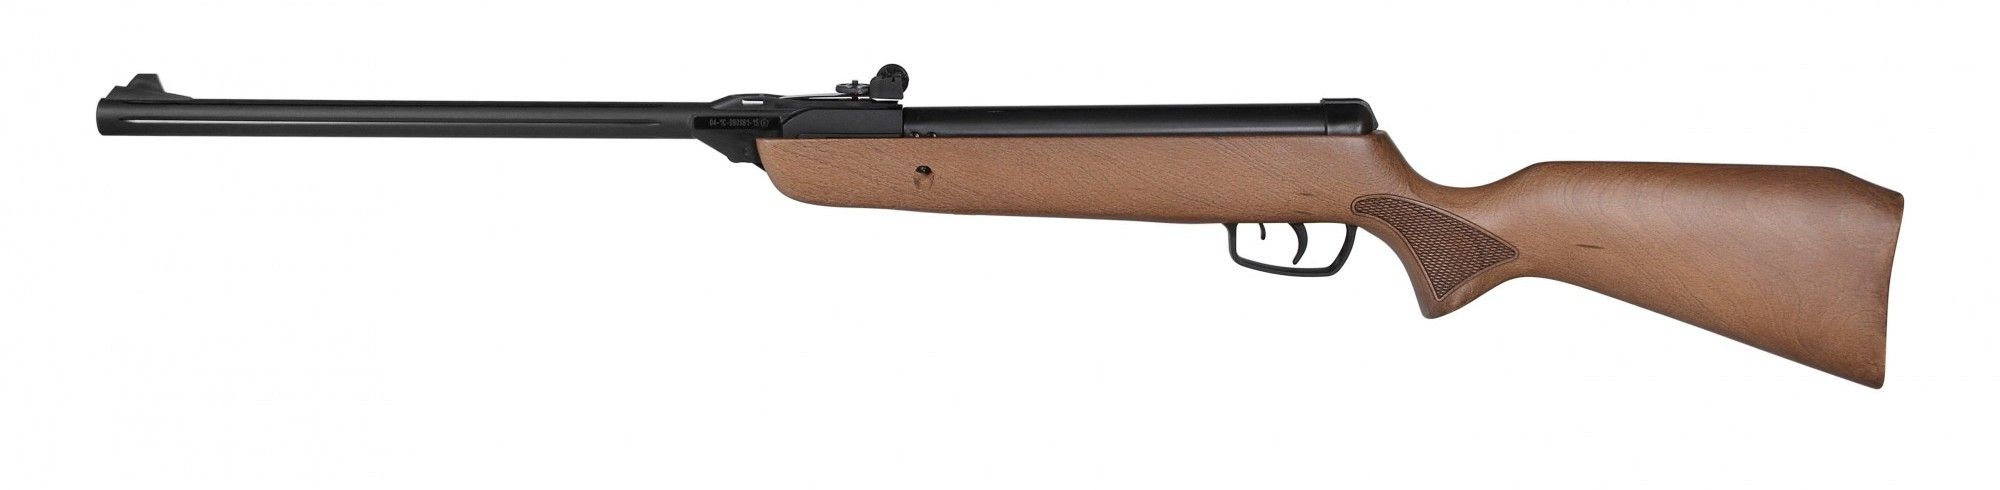 Gamo Junior Delta airgun.Gamo airgun carbine Junior Delta